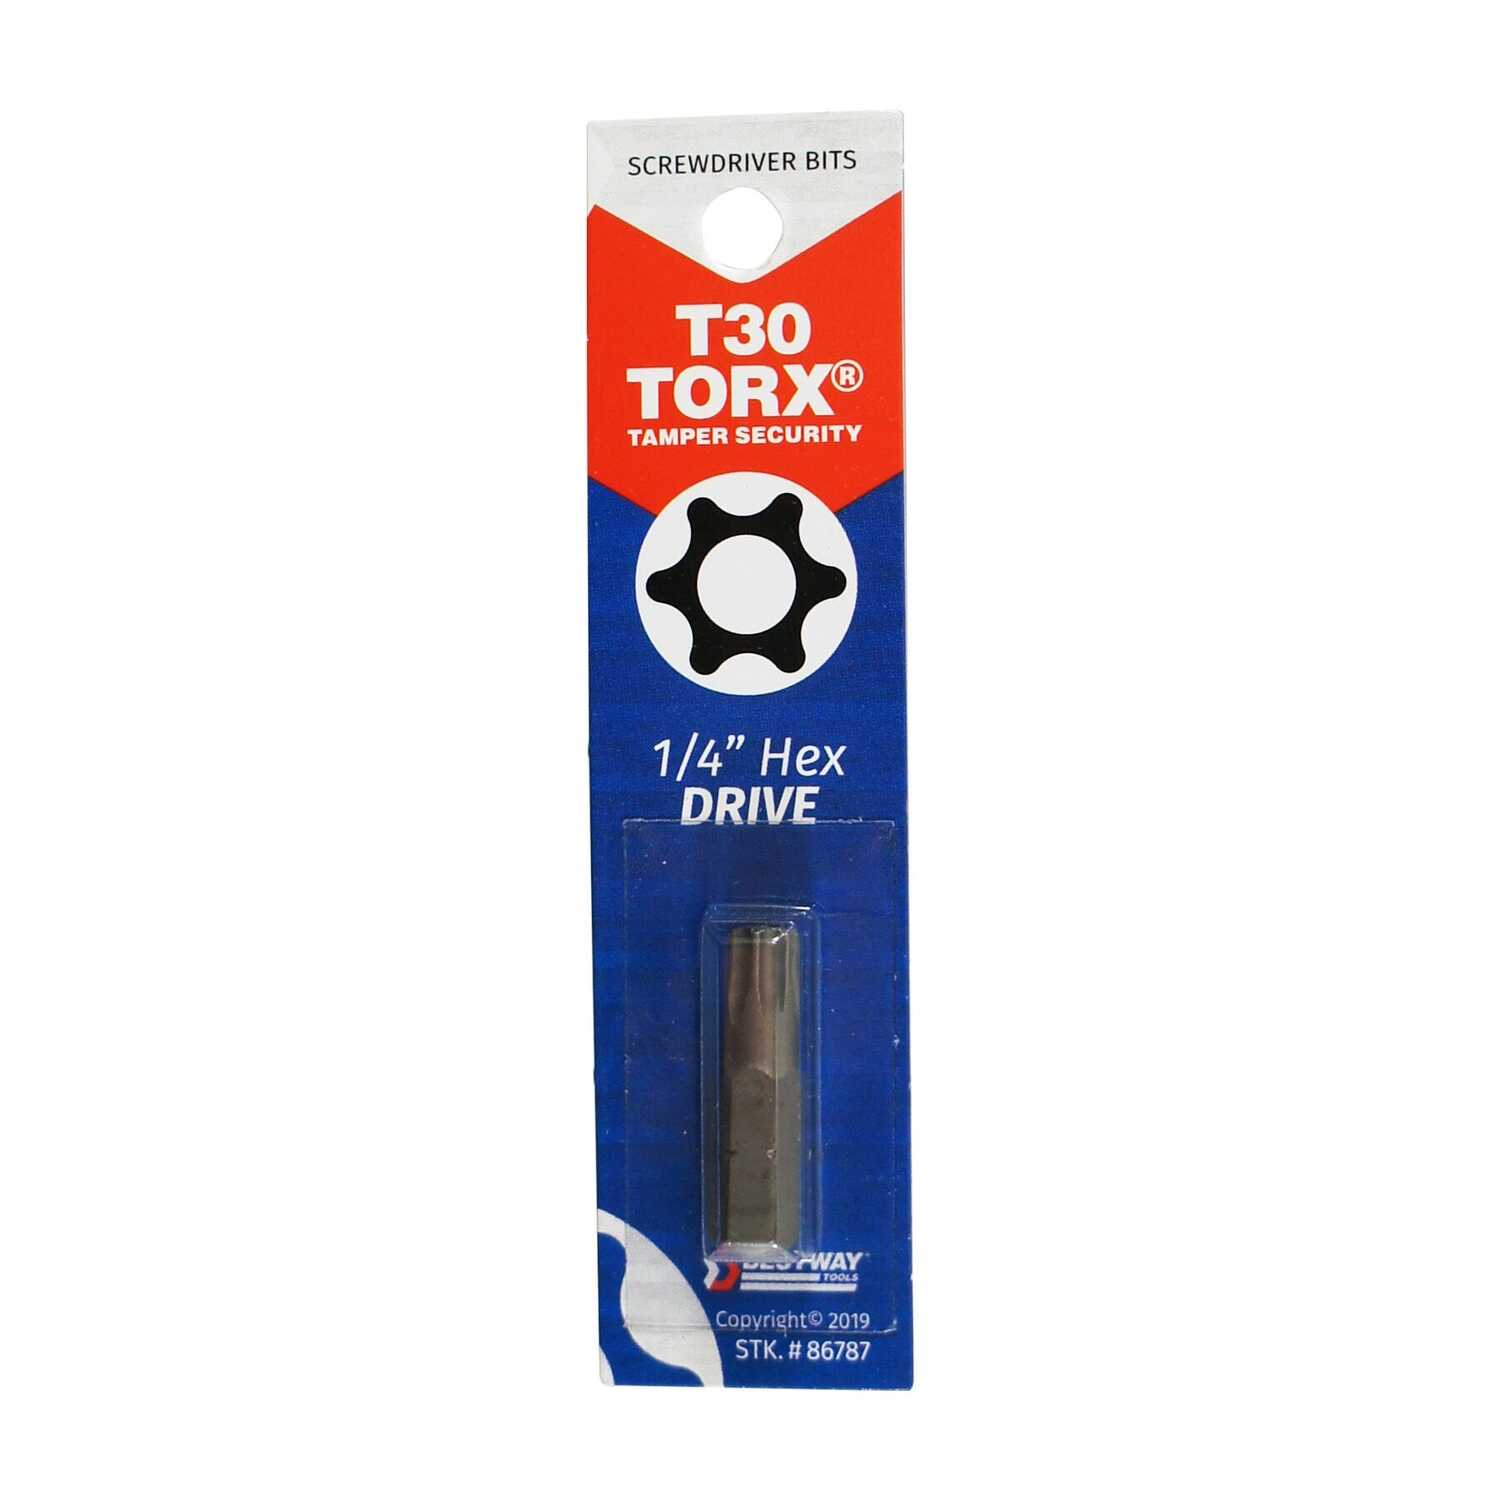 Best Way Tools  1 in. L x T30   Screwdriver Bit  1/4 in. Hex  TORX Tamperproof Bit  1 pc.